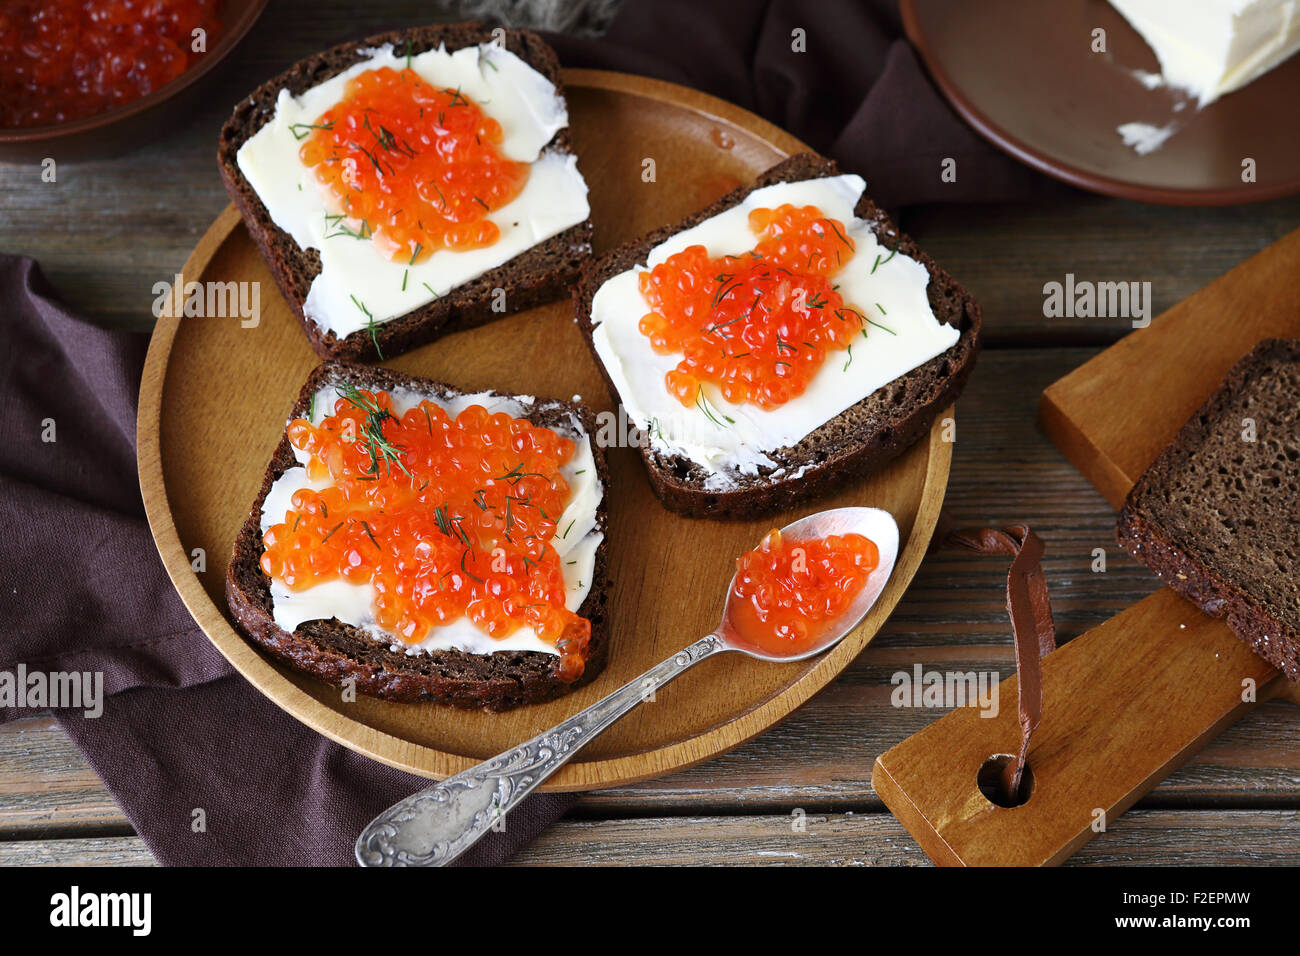 Delicious canapes with caviar on a plate, food - Stock Image